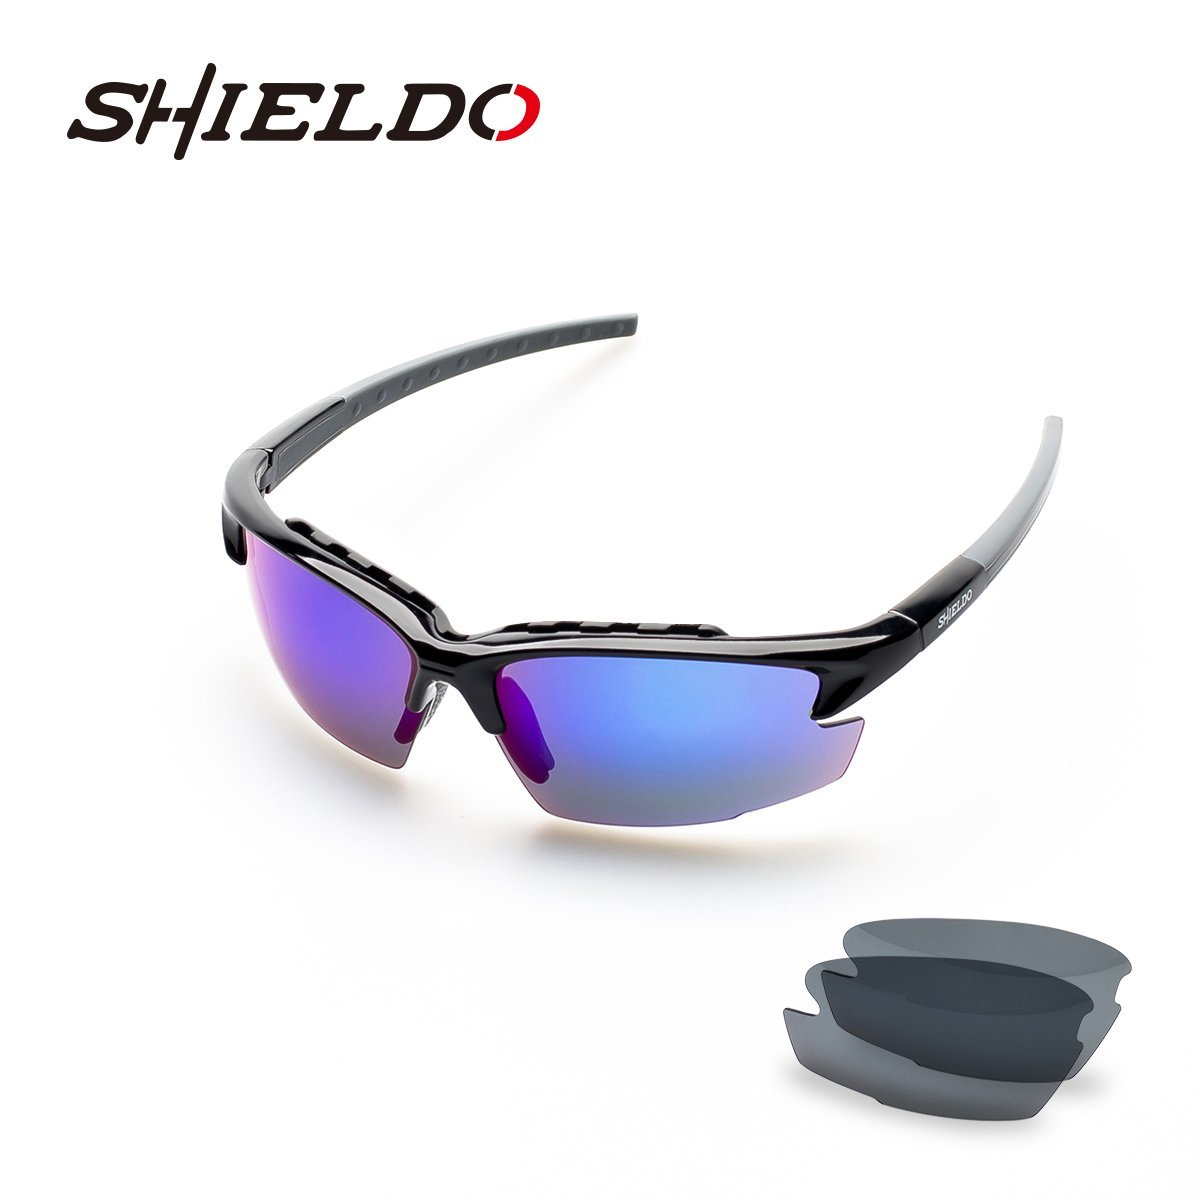 Sports Sunglasses for Baseball Golf and More